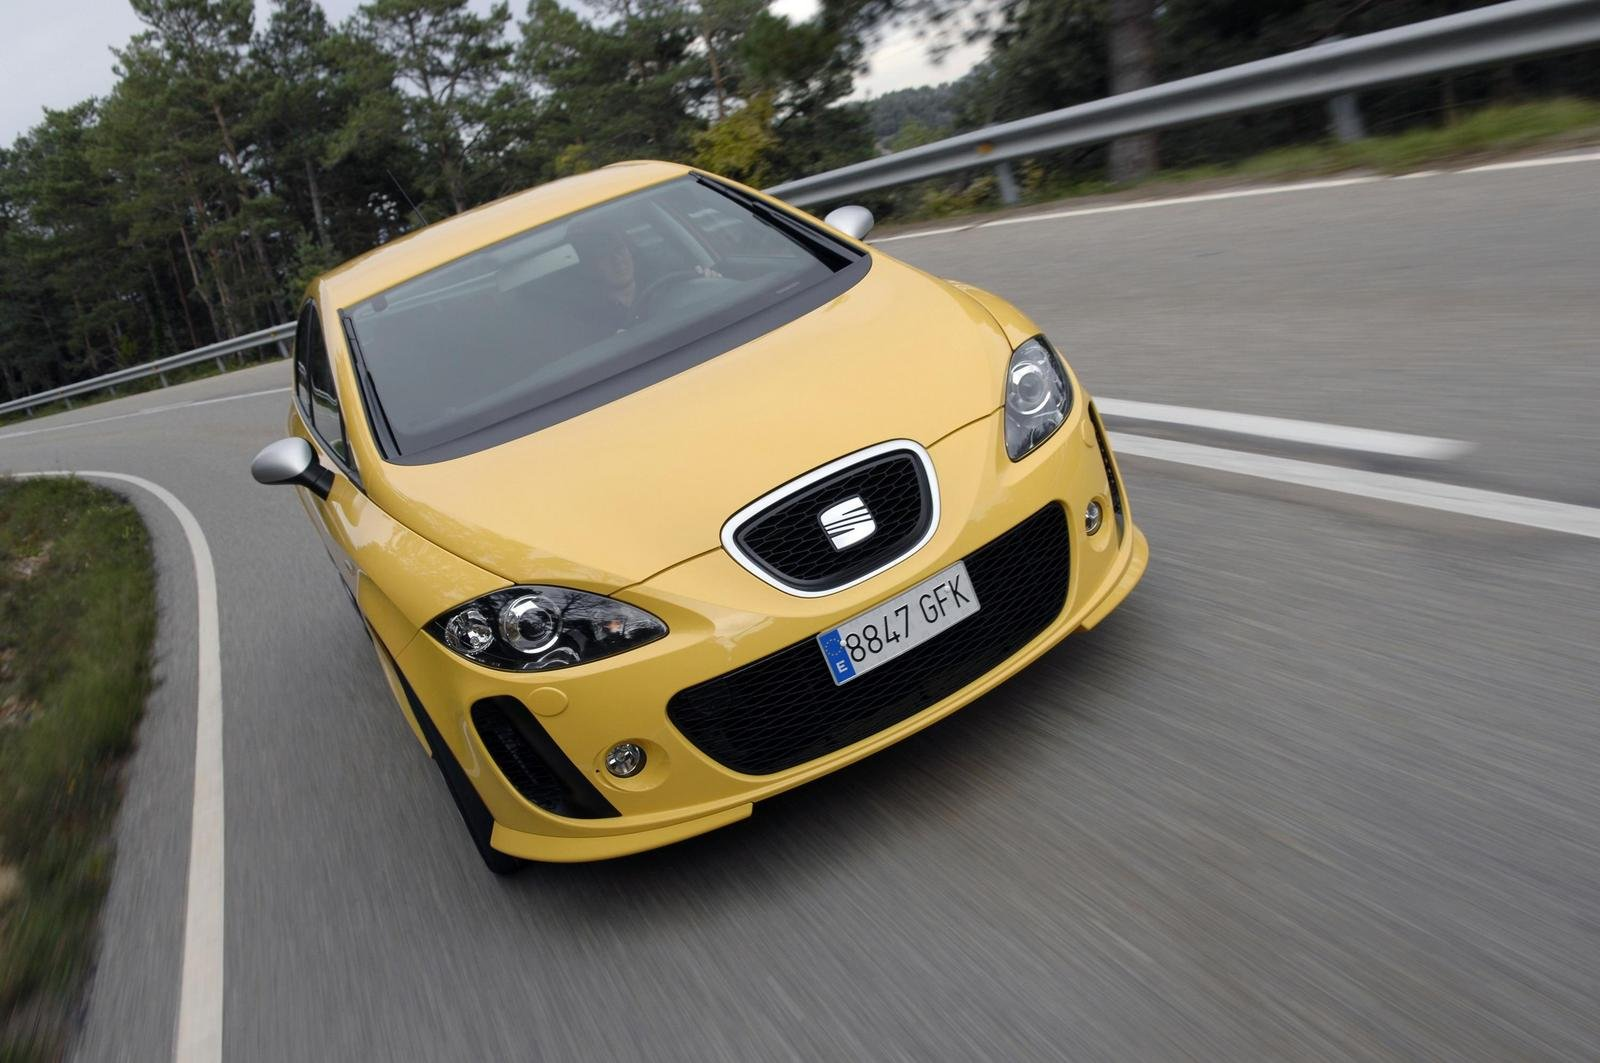 2009 seat leon linea r picture 272739 car review top speed. Black Bedroom Furniture Sets. Home Design Ideas